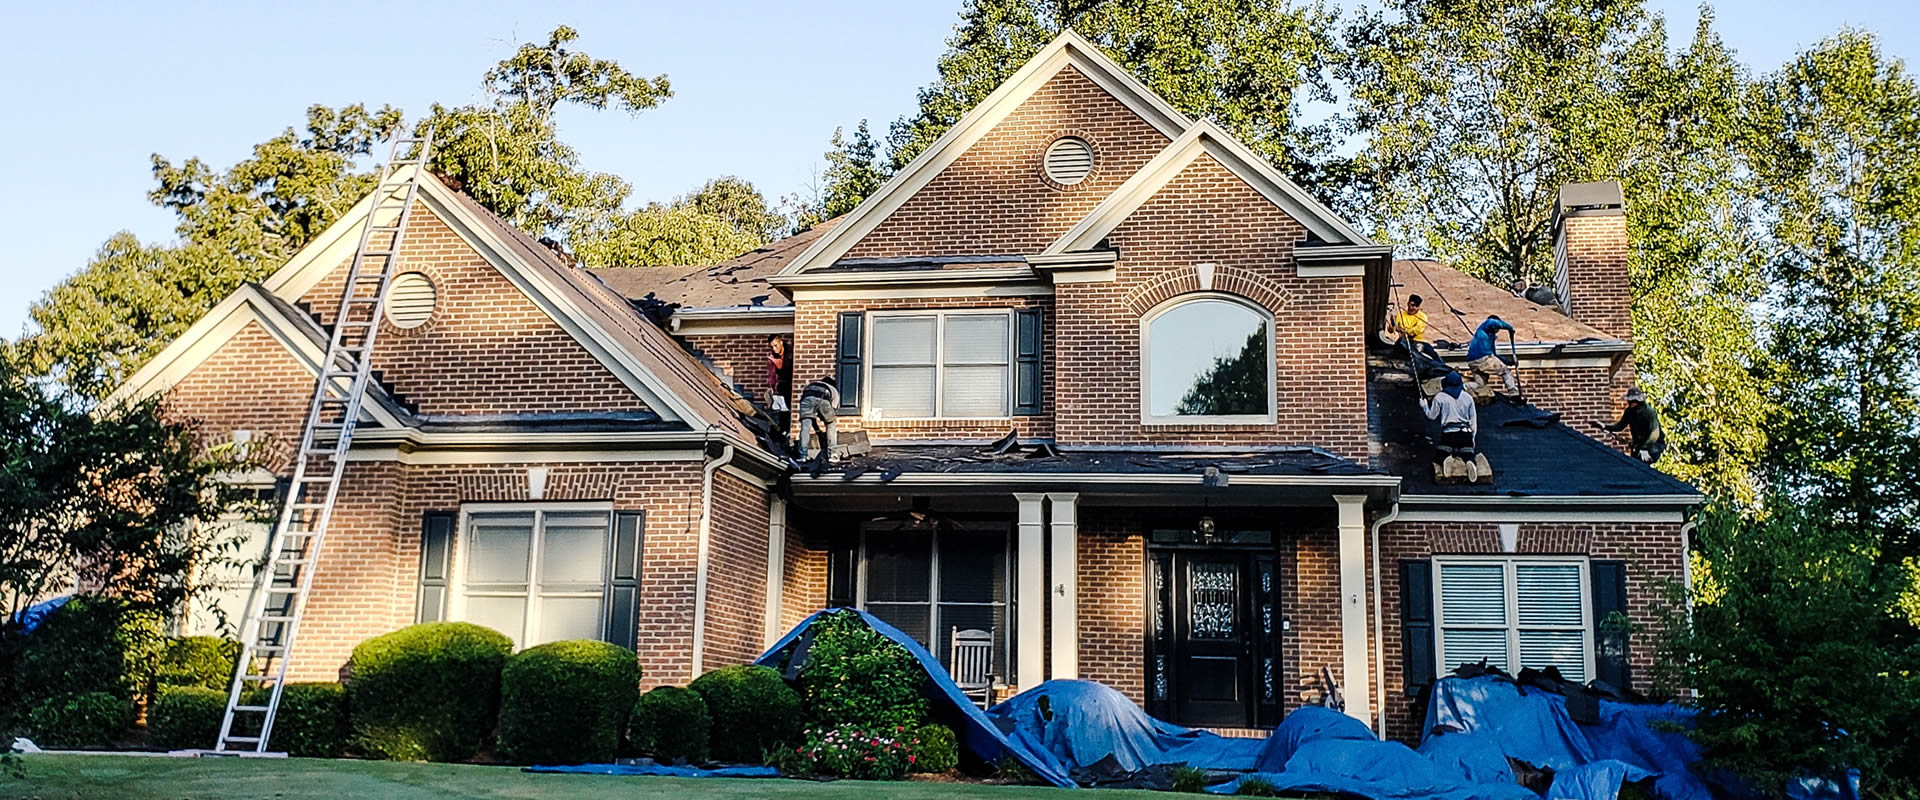 Roof Repair Morris County NJ